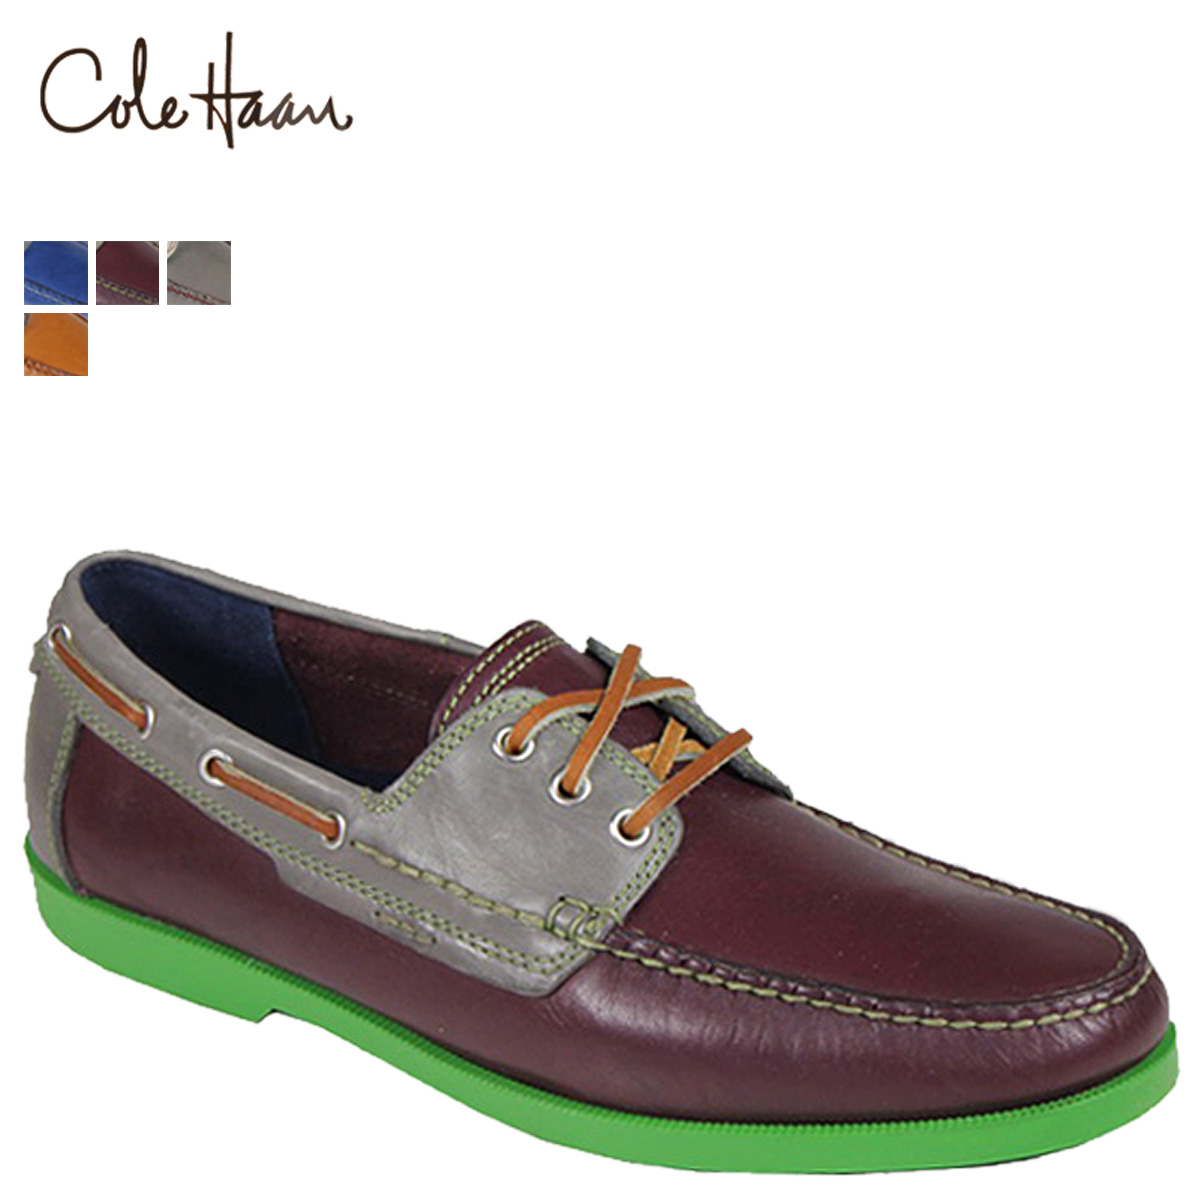 b4ad91387941ef Cole Haan Cole Haan fire island boat shoes  4 colors  C11539 C11540 C11541  C115 FIRE ISLAND BOAT SHOES M Wise leather men SAFARI publication product  ...